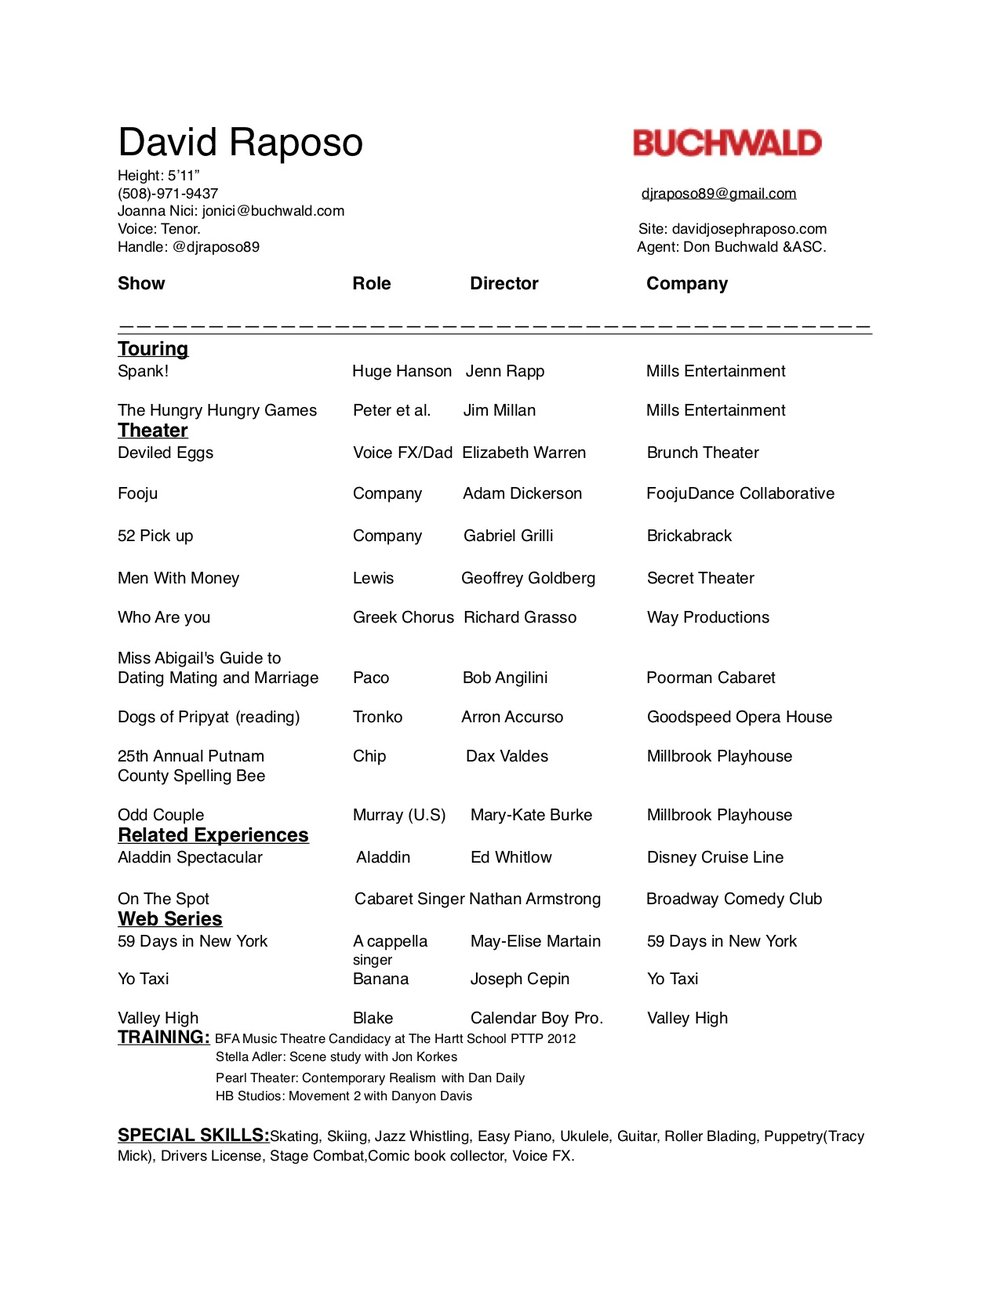 TheaterResume(nopic)pic.jpg